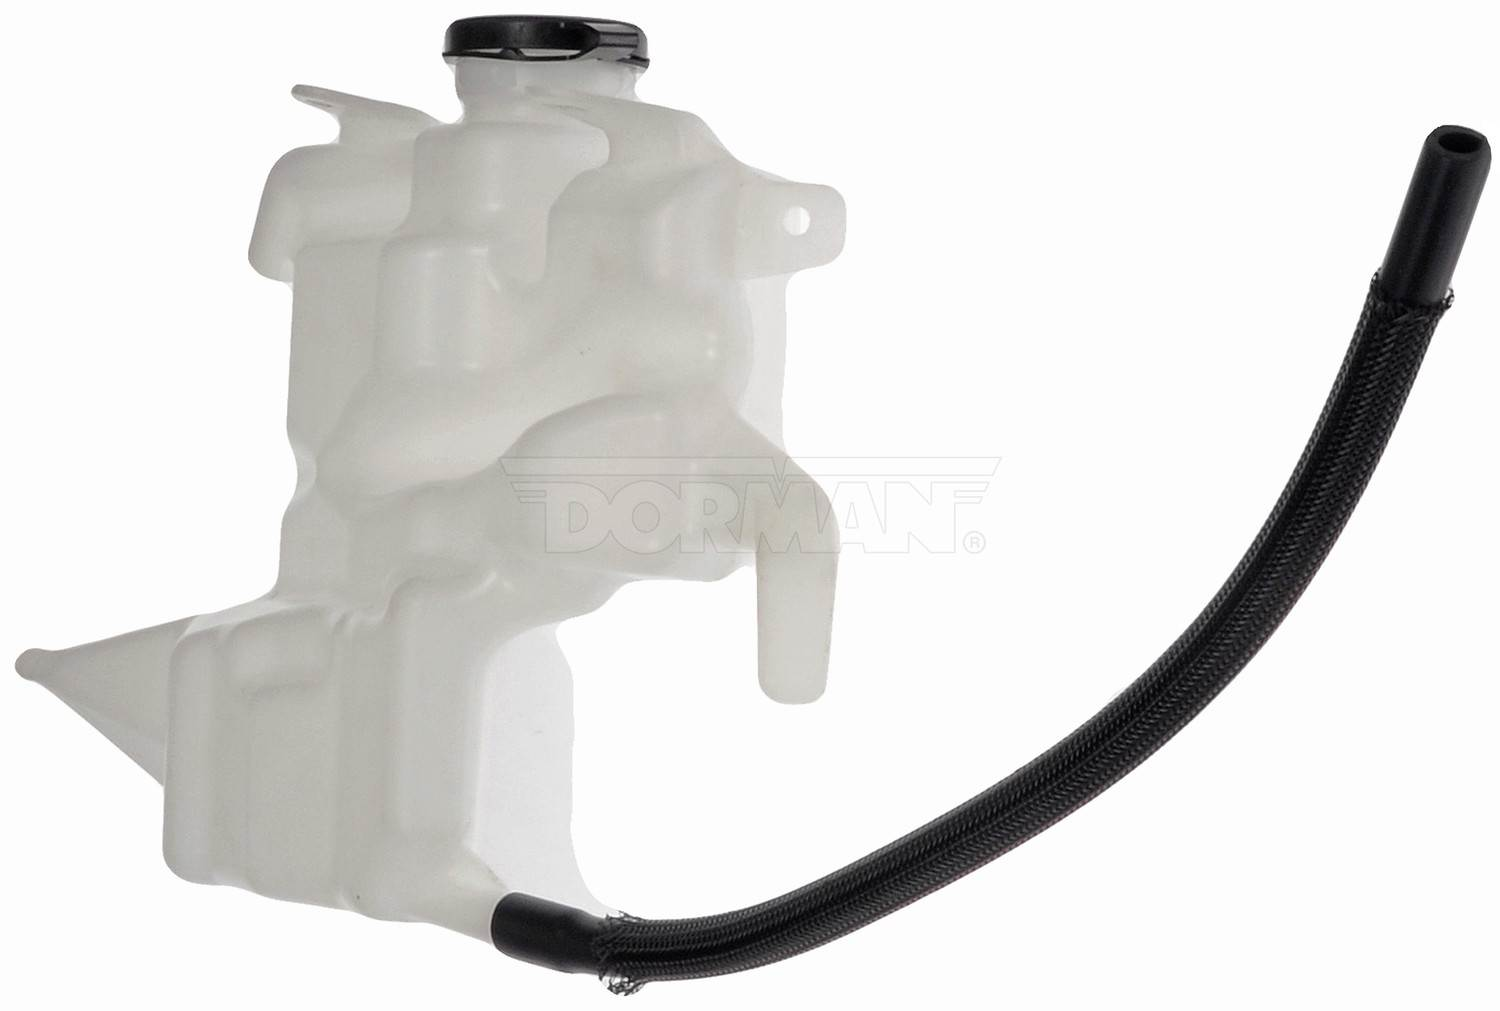 DORMAN OE SOLUTIONS - Engine Coolant Recovery Tank (Front) - DRE 603-138